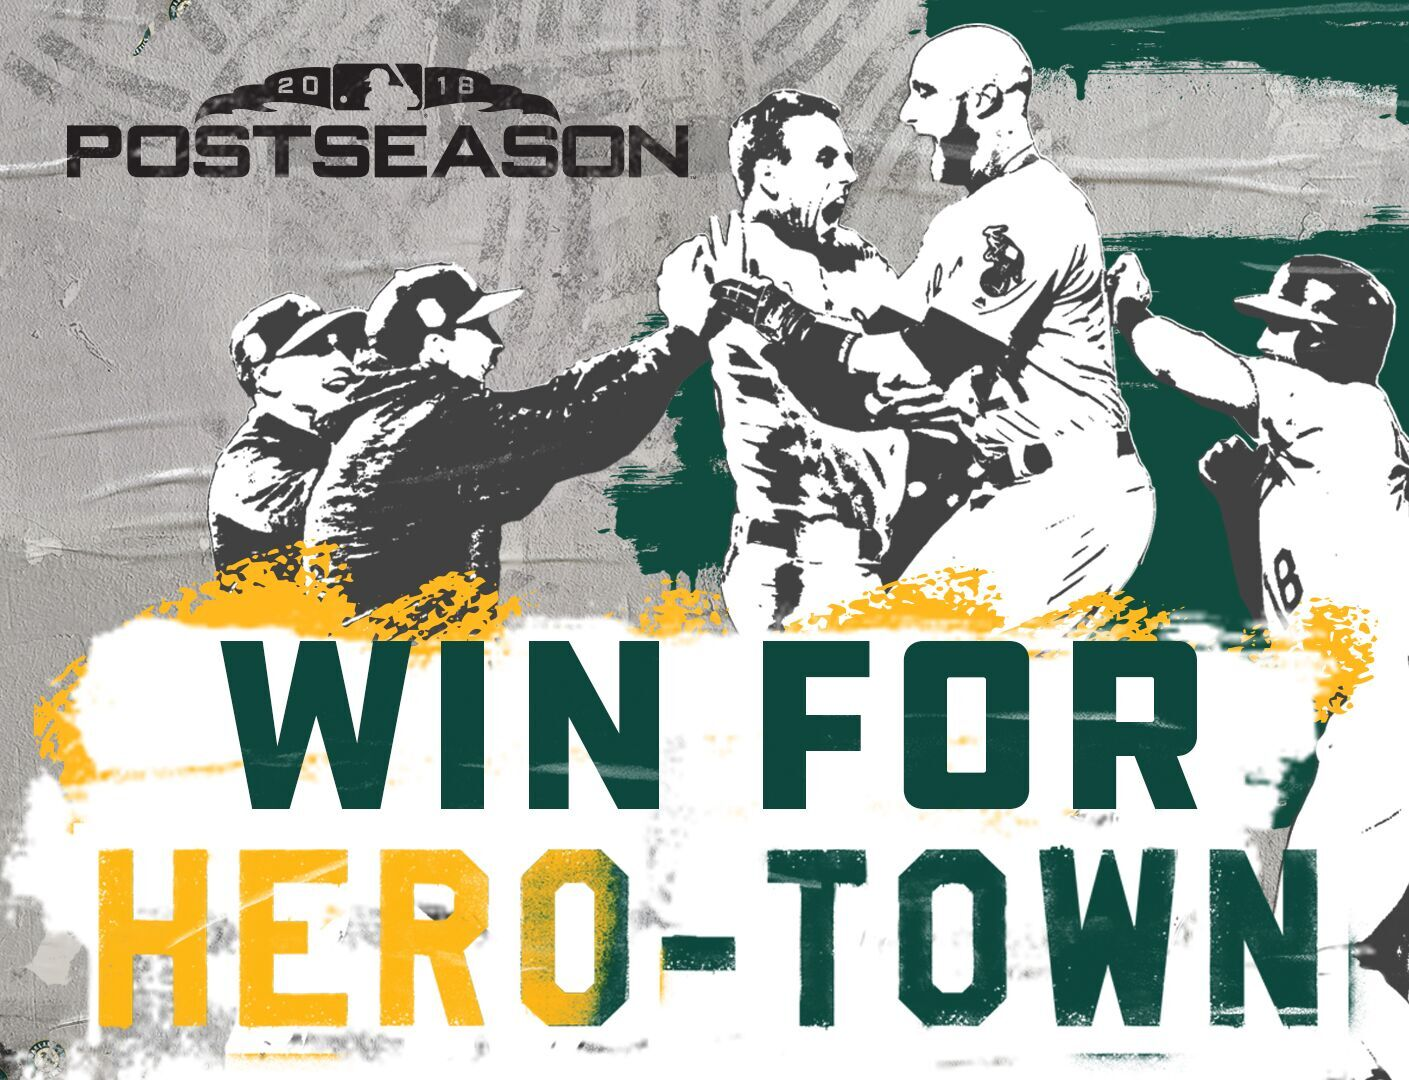 CLINCHED!   #HeroTown is in the Postseason! https://t.co/2nbQehnD42